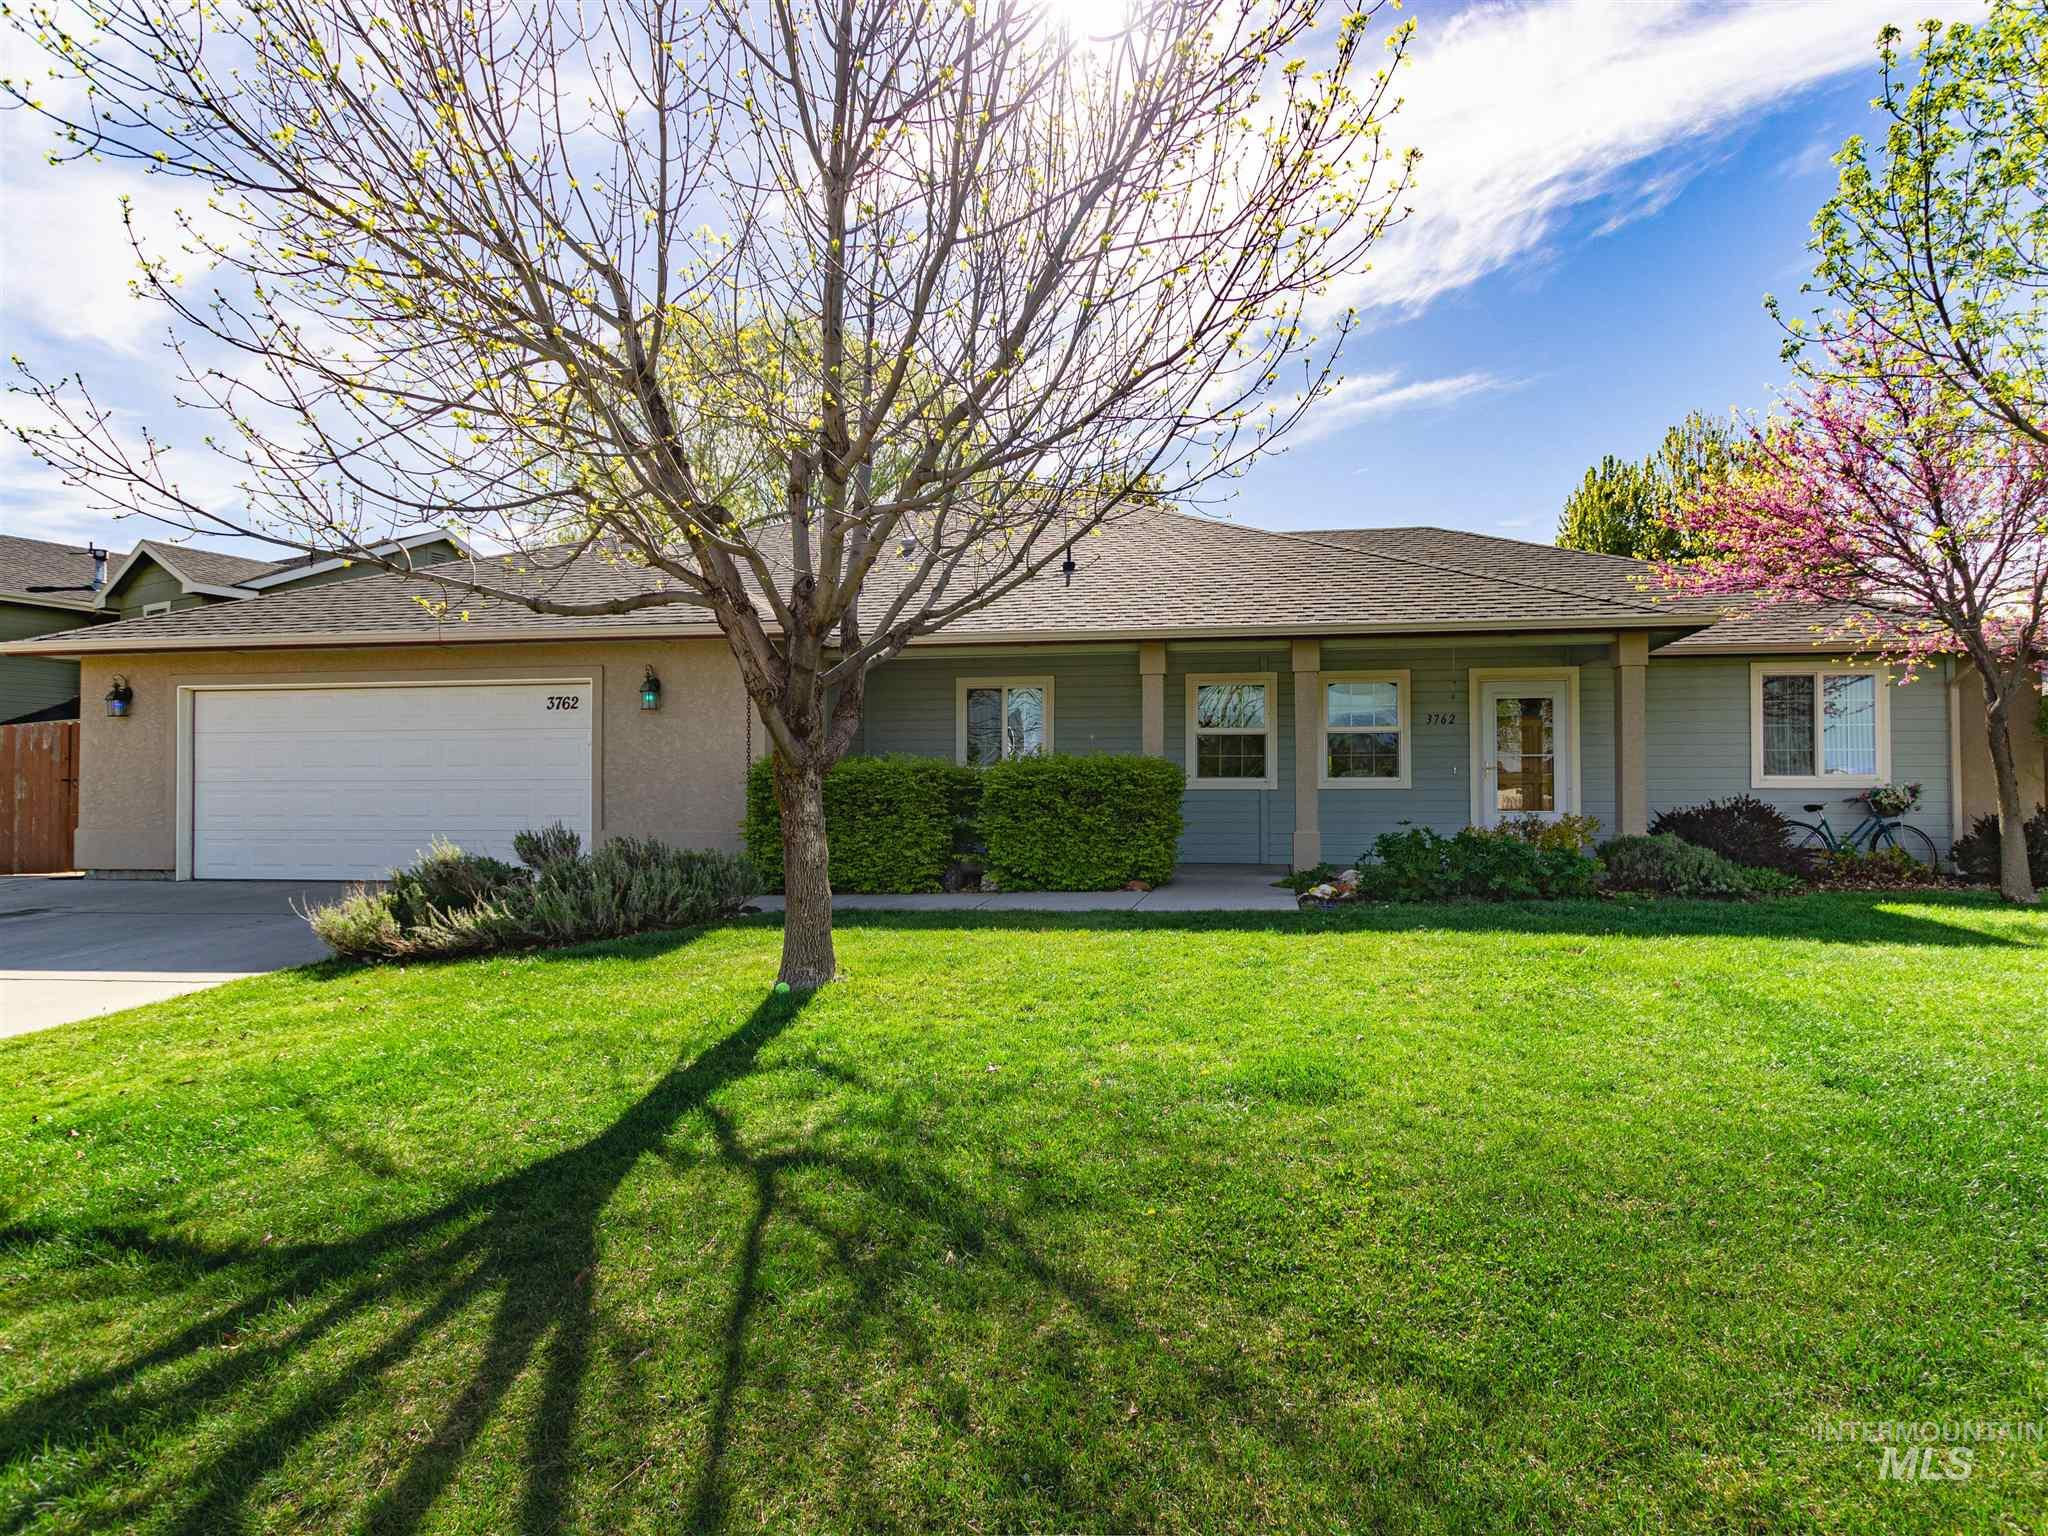 3762 N Twin Eagles Way Property Photo - Meridian, ID real estate listing